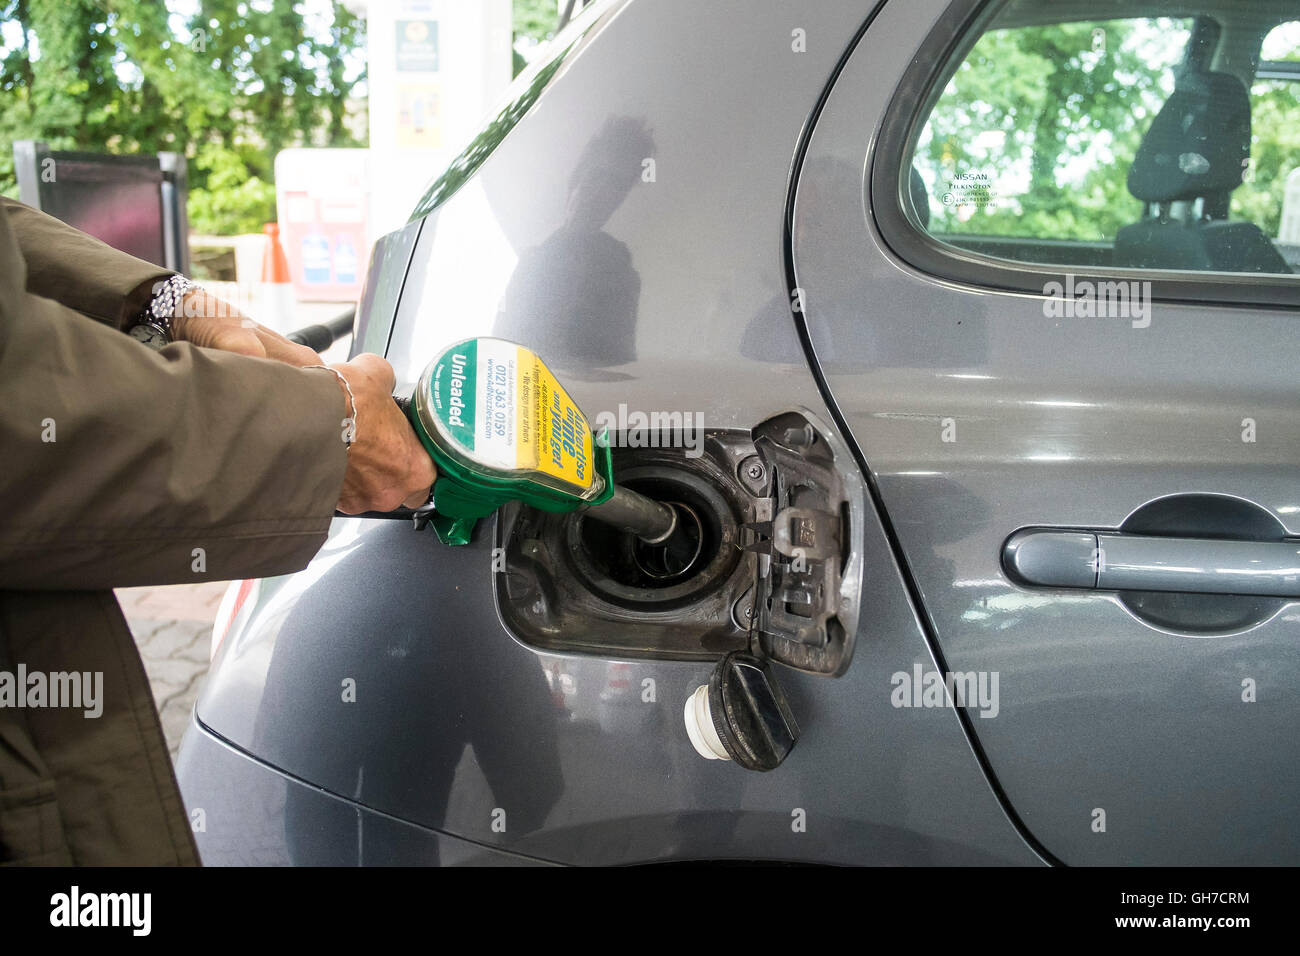 A customer filling a car with petrol. - Stock Image